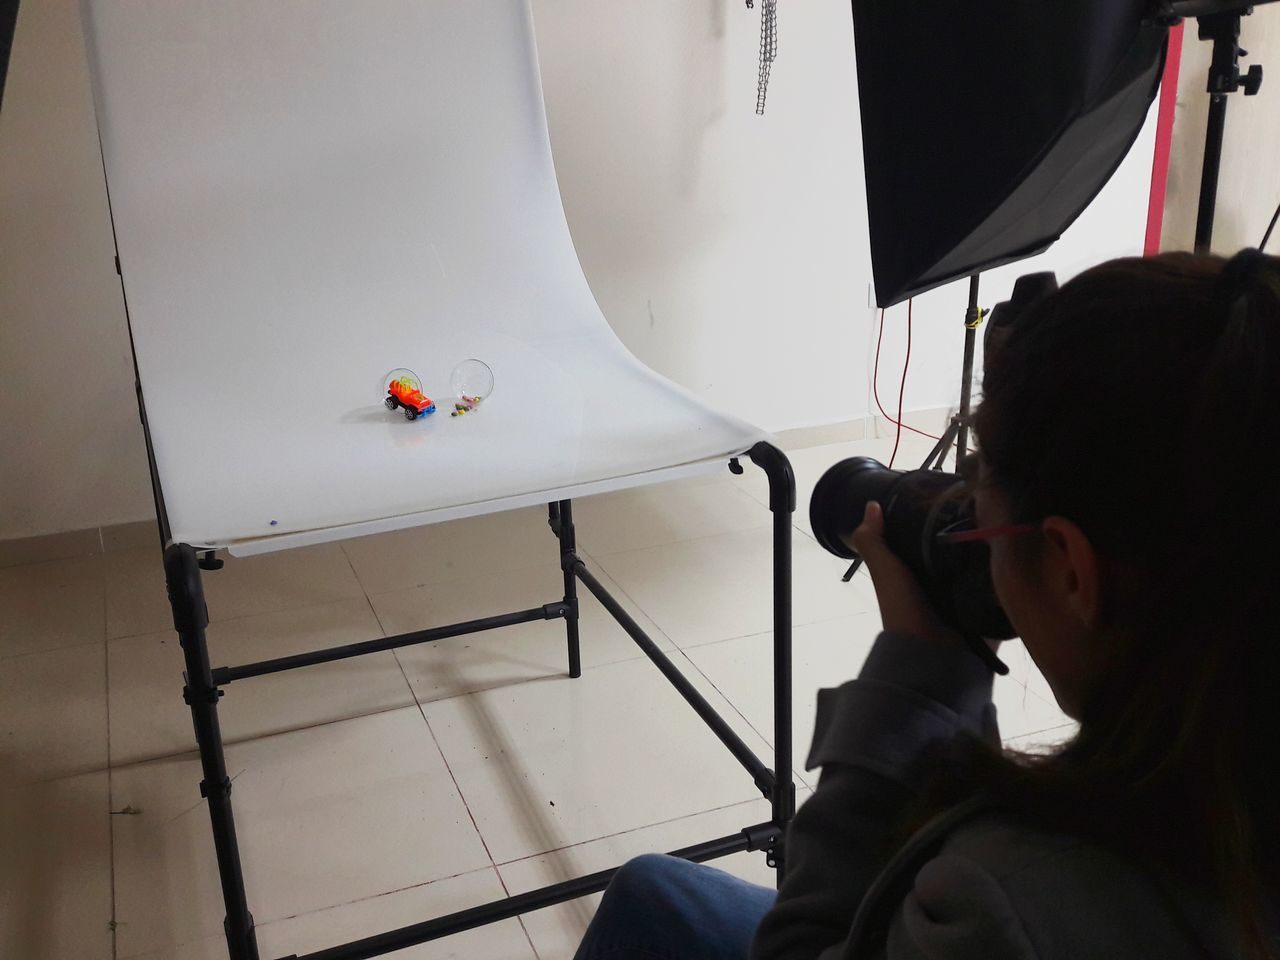 High angle view of young woman photographing toys on chair in studio